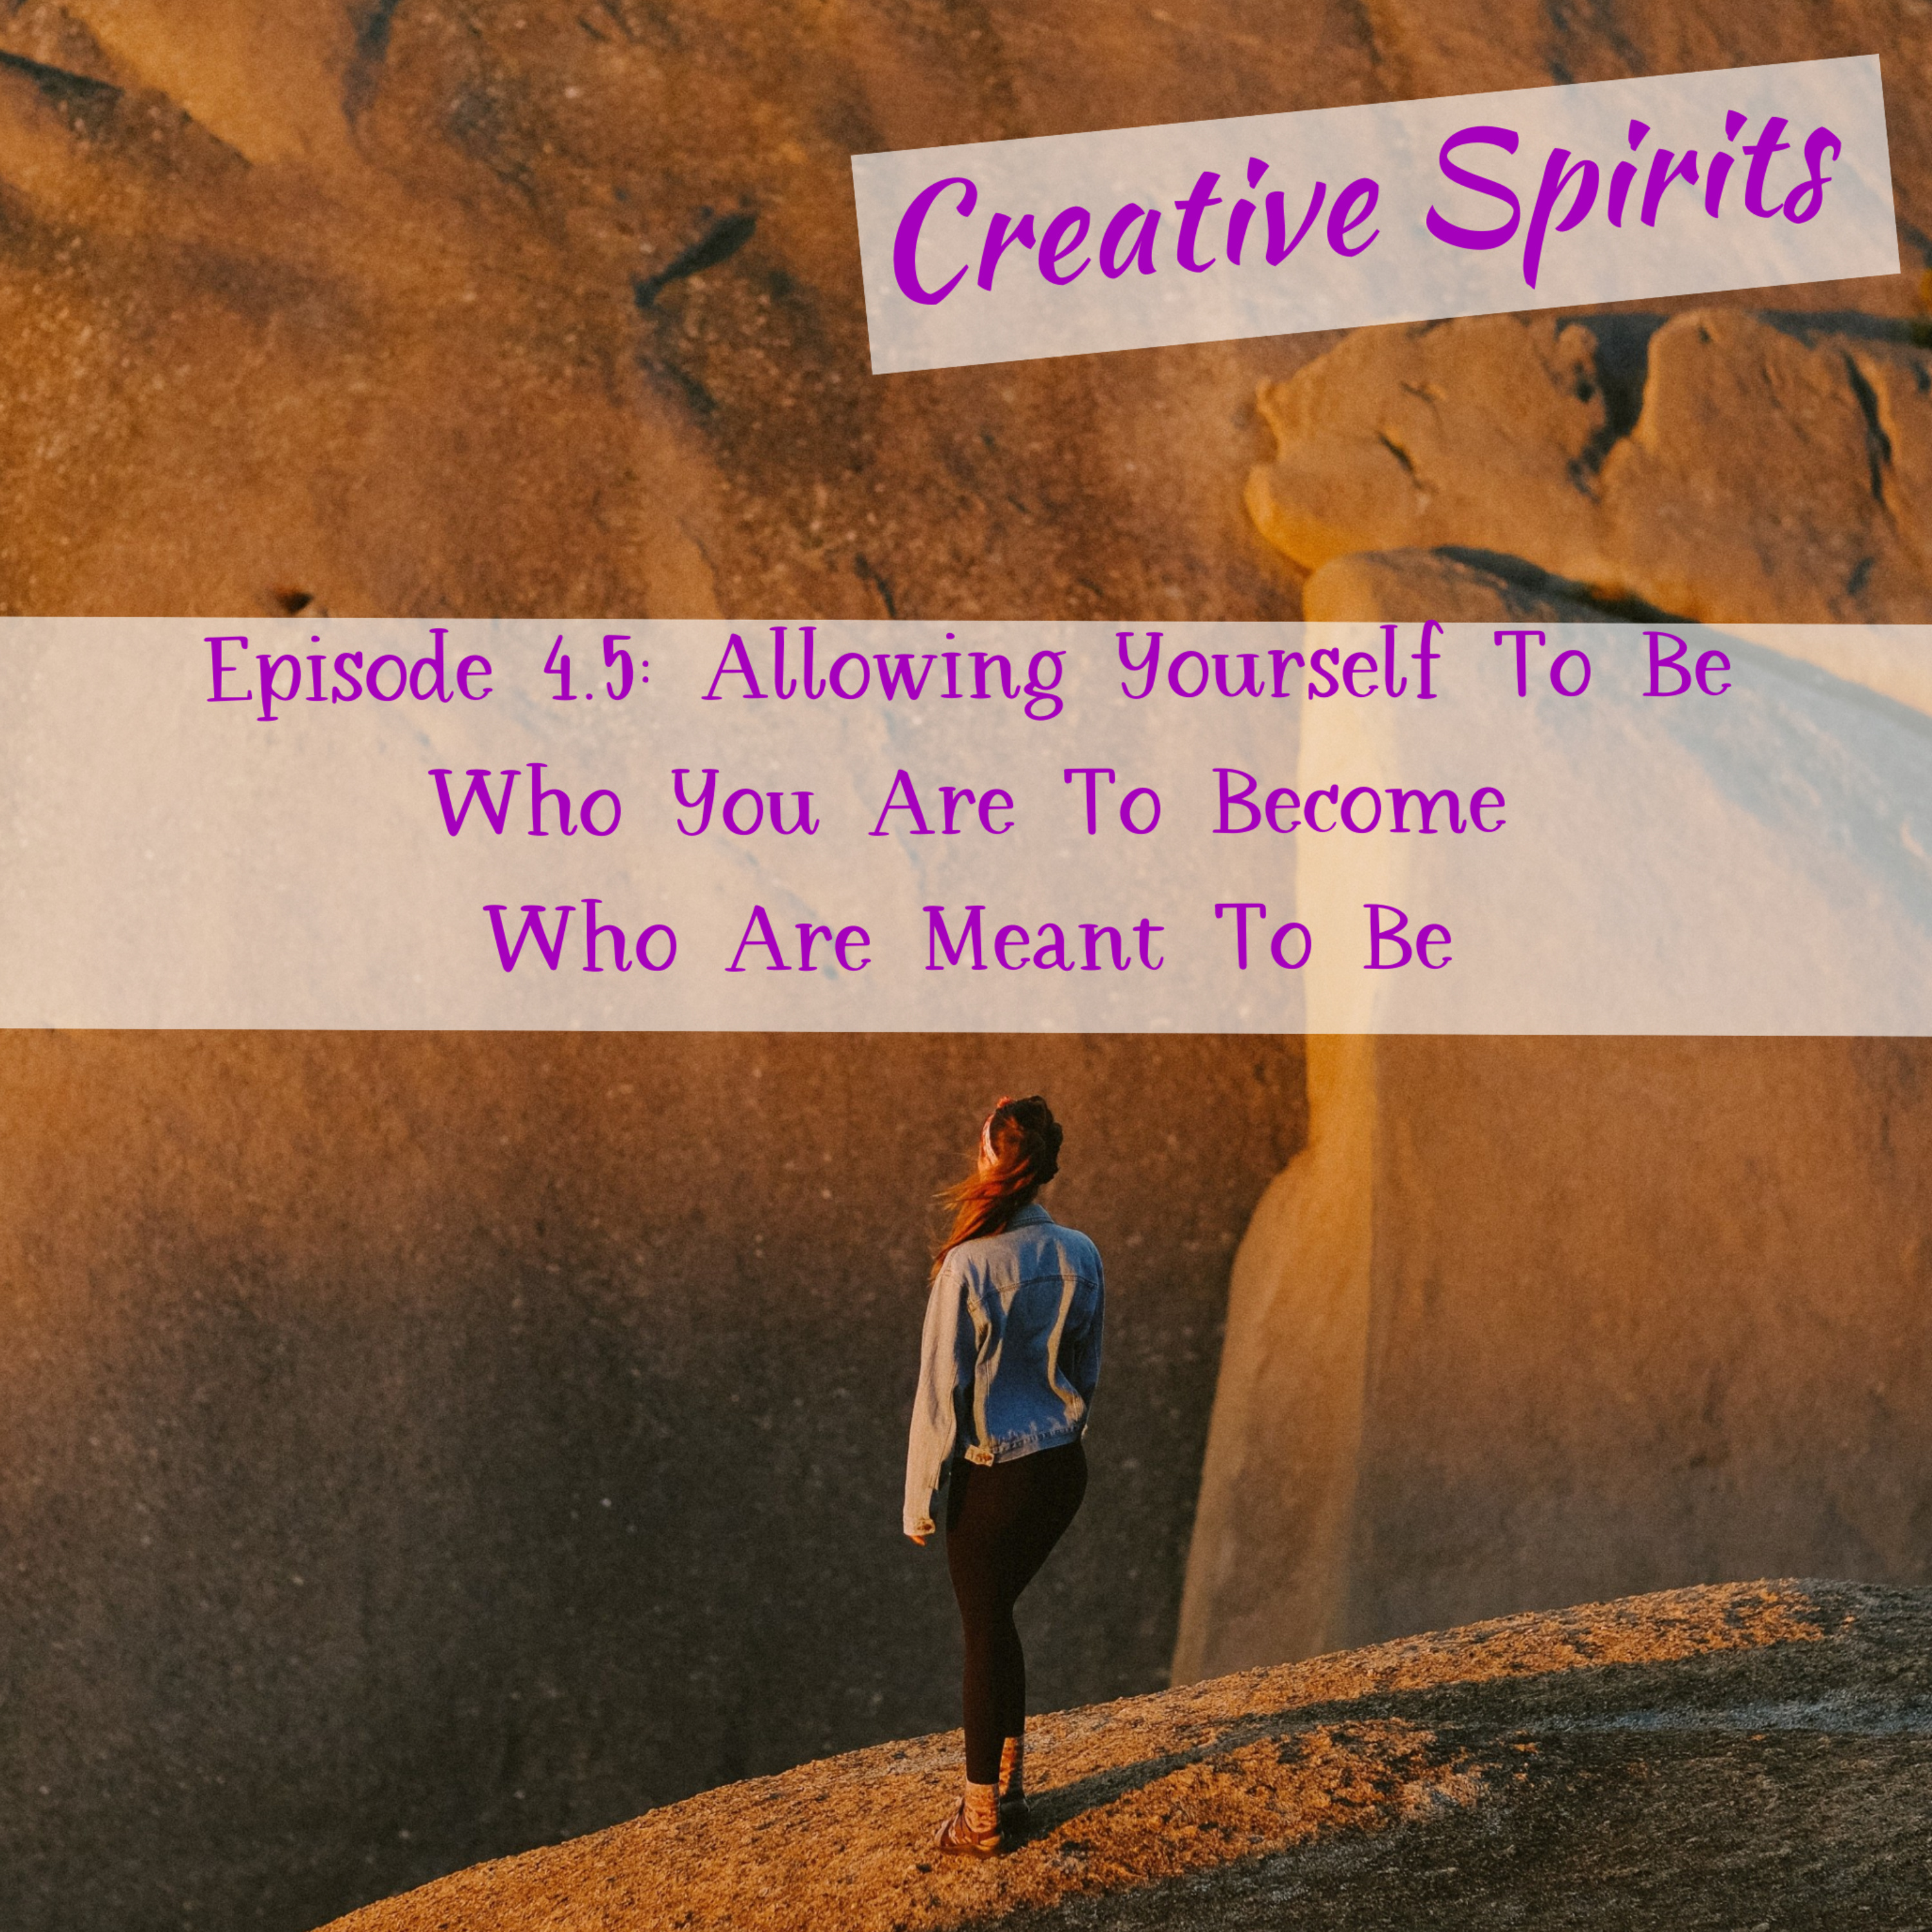 Allowing Yourself To Be Who You Are To Become Who Are Meant To Be